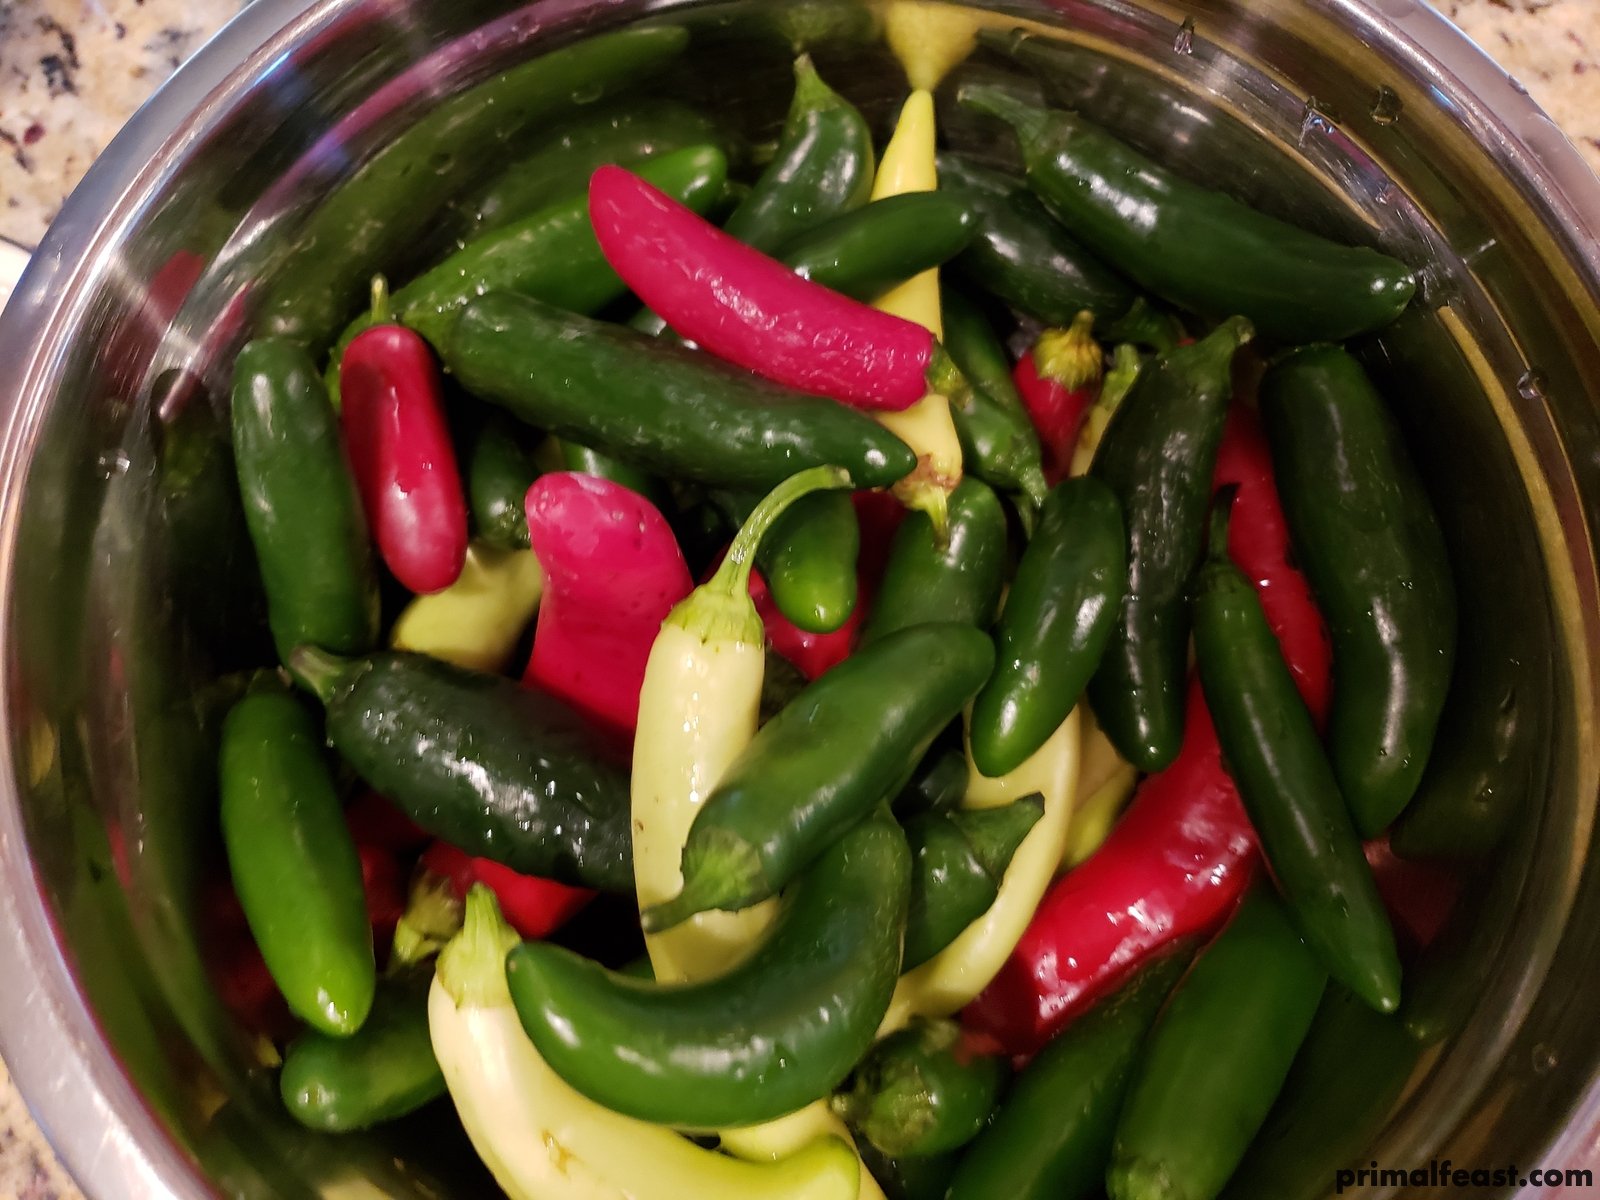 2018 0917 peppers pickling 001.jpg